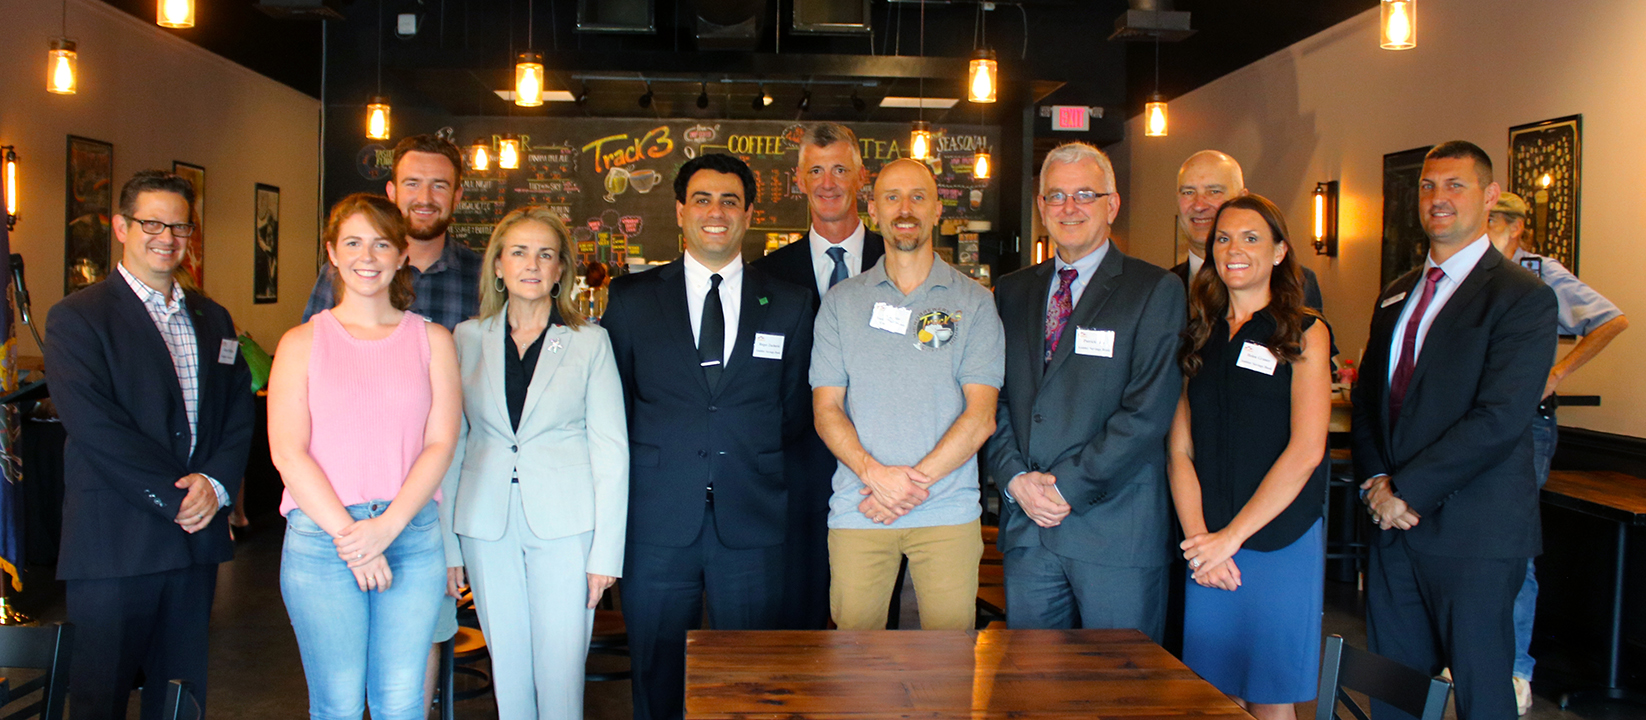 U.S. Rep. Madeleine Dean joins Small Business celebration in upper Montgomery County